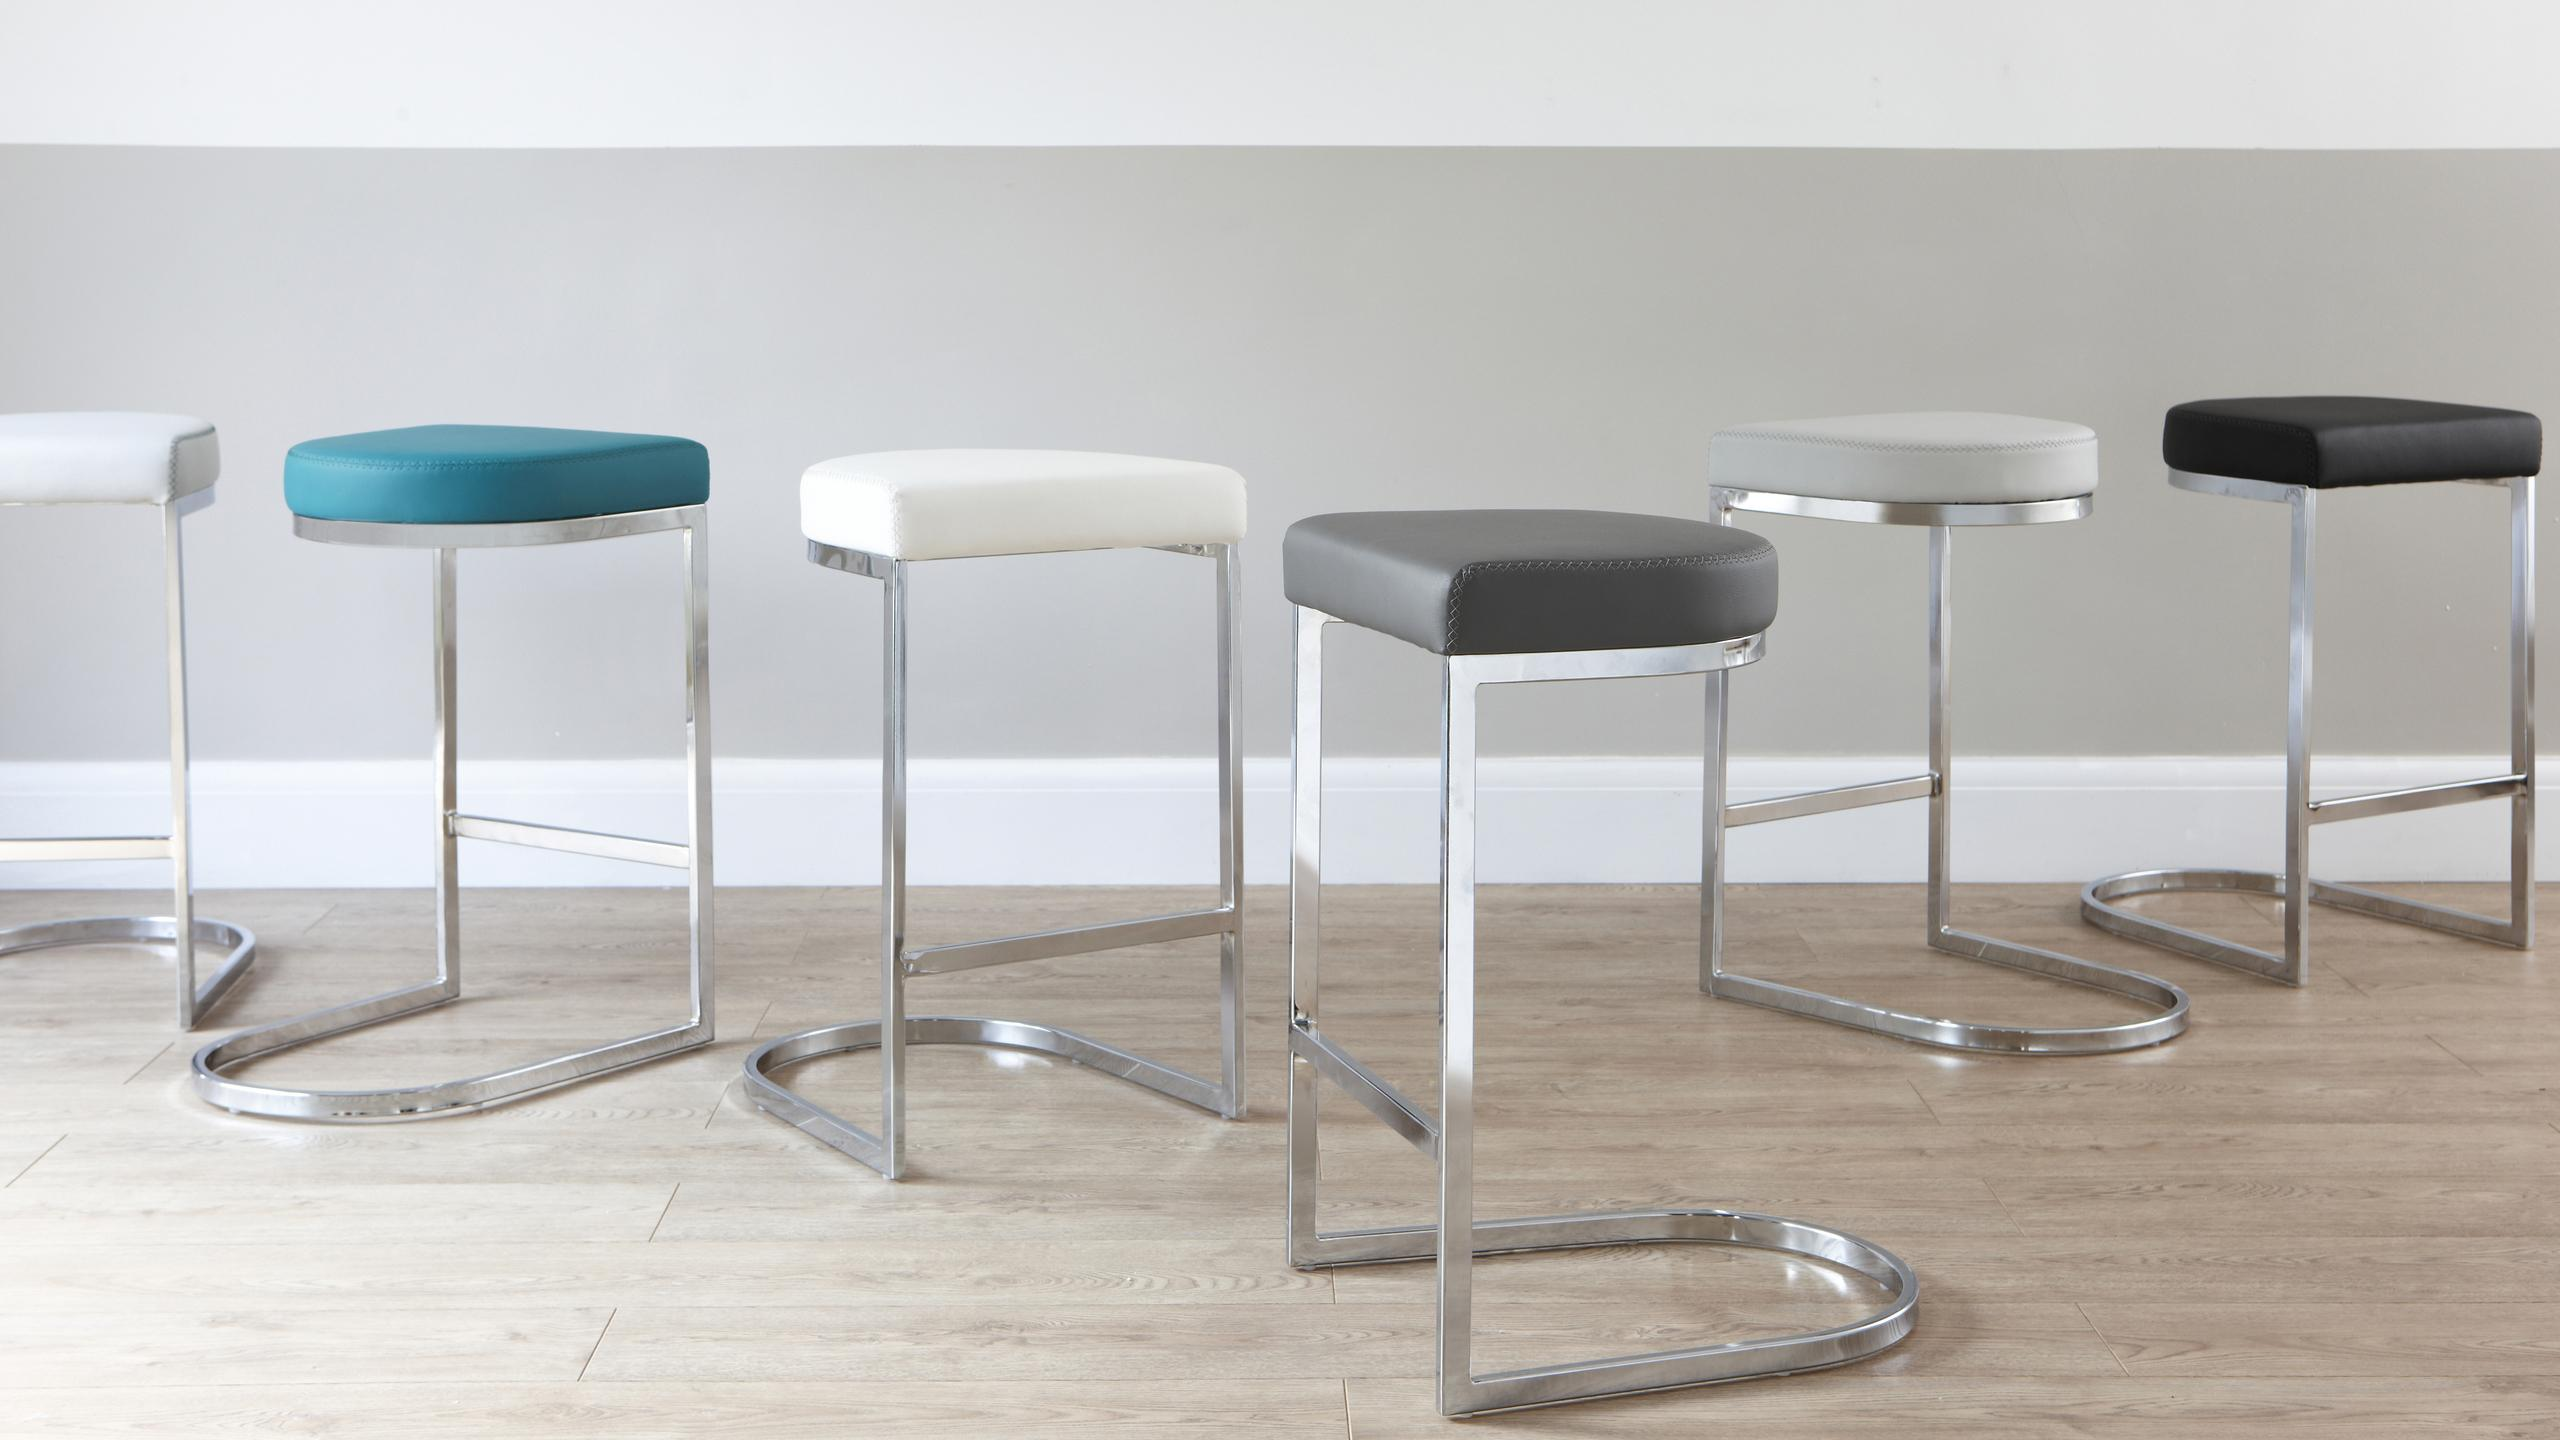 Backless vs Backrest Kitchen Bar Stools